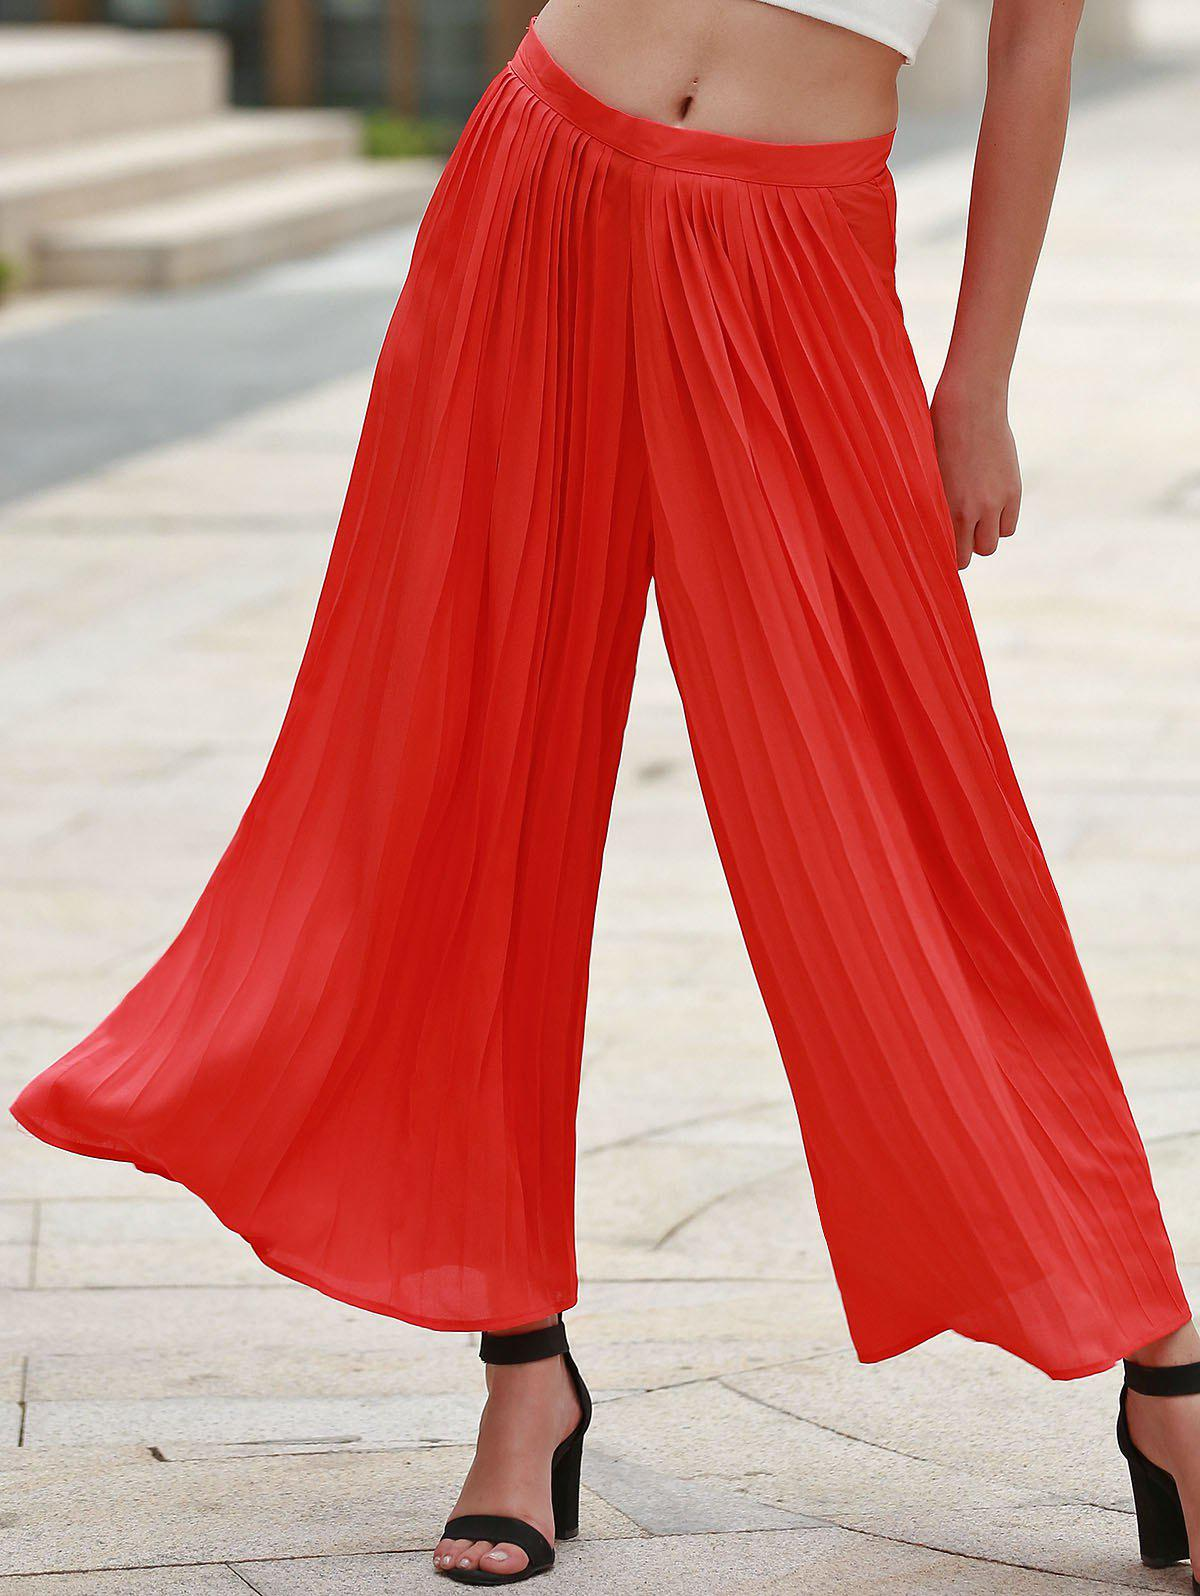 Trendy Pleated Jacinth Chiffon Wide-Leg Ankle Pants For Women - JACINTH S